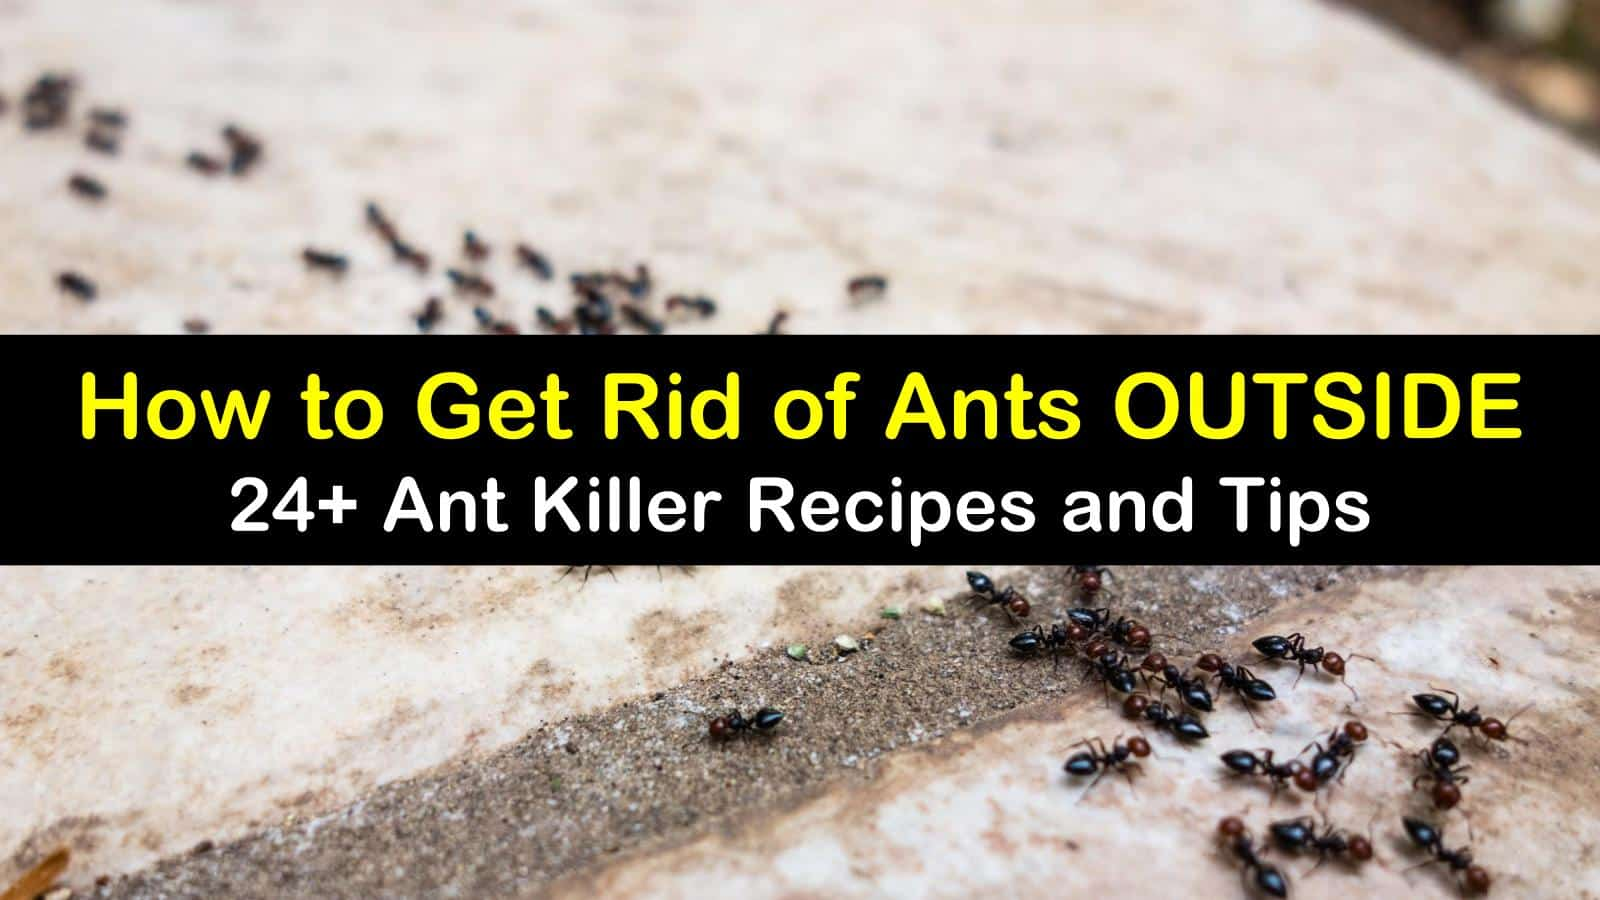 how to get rid of ants outside titleimg1